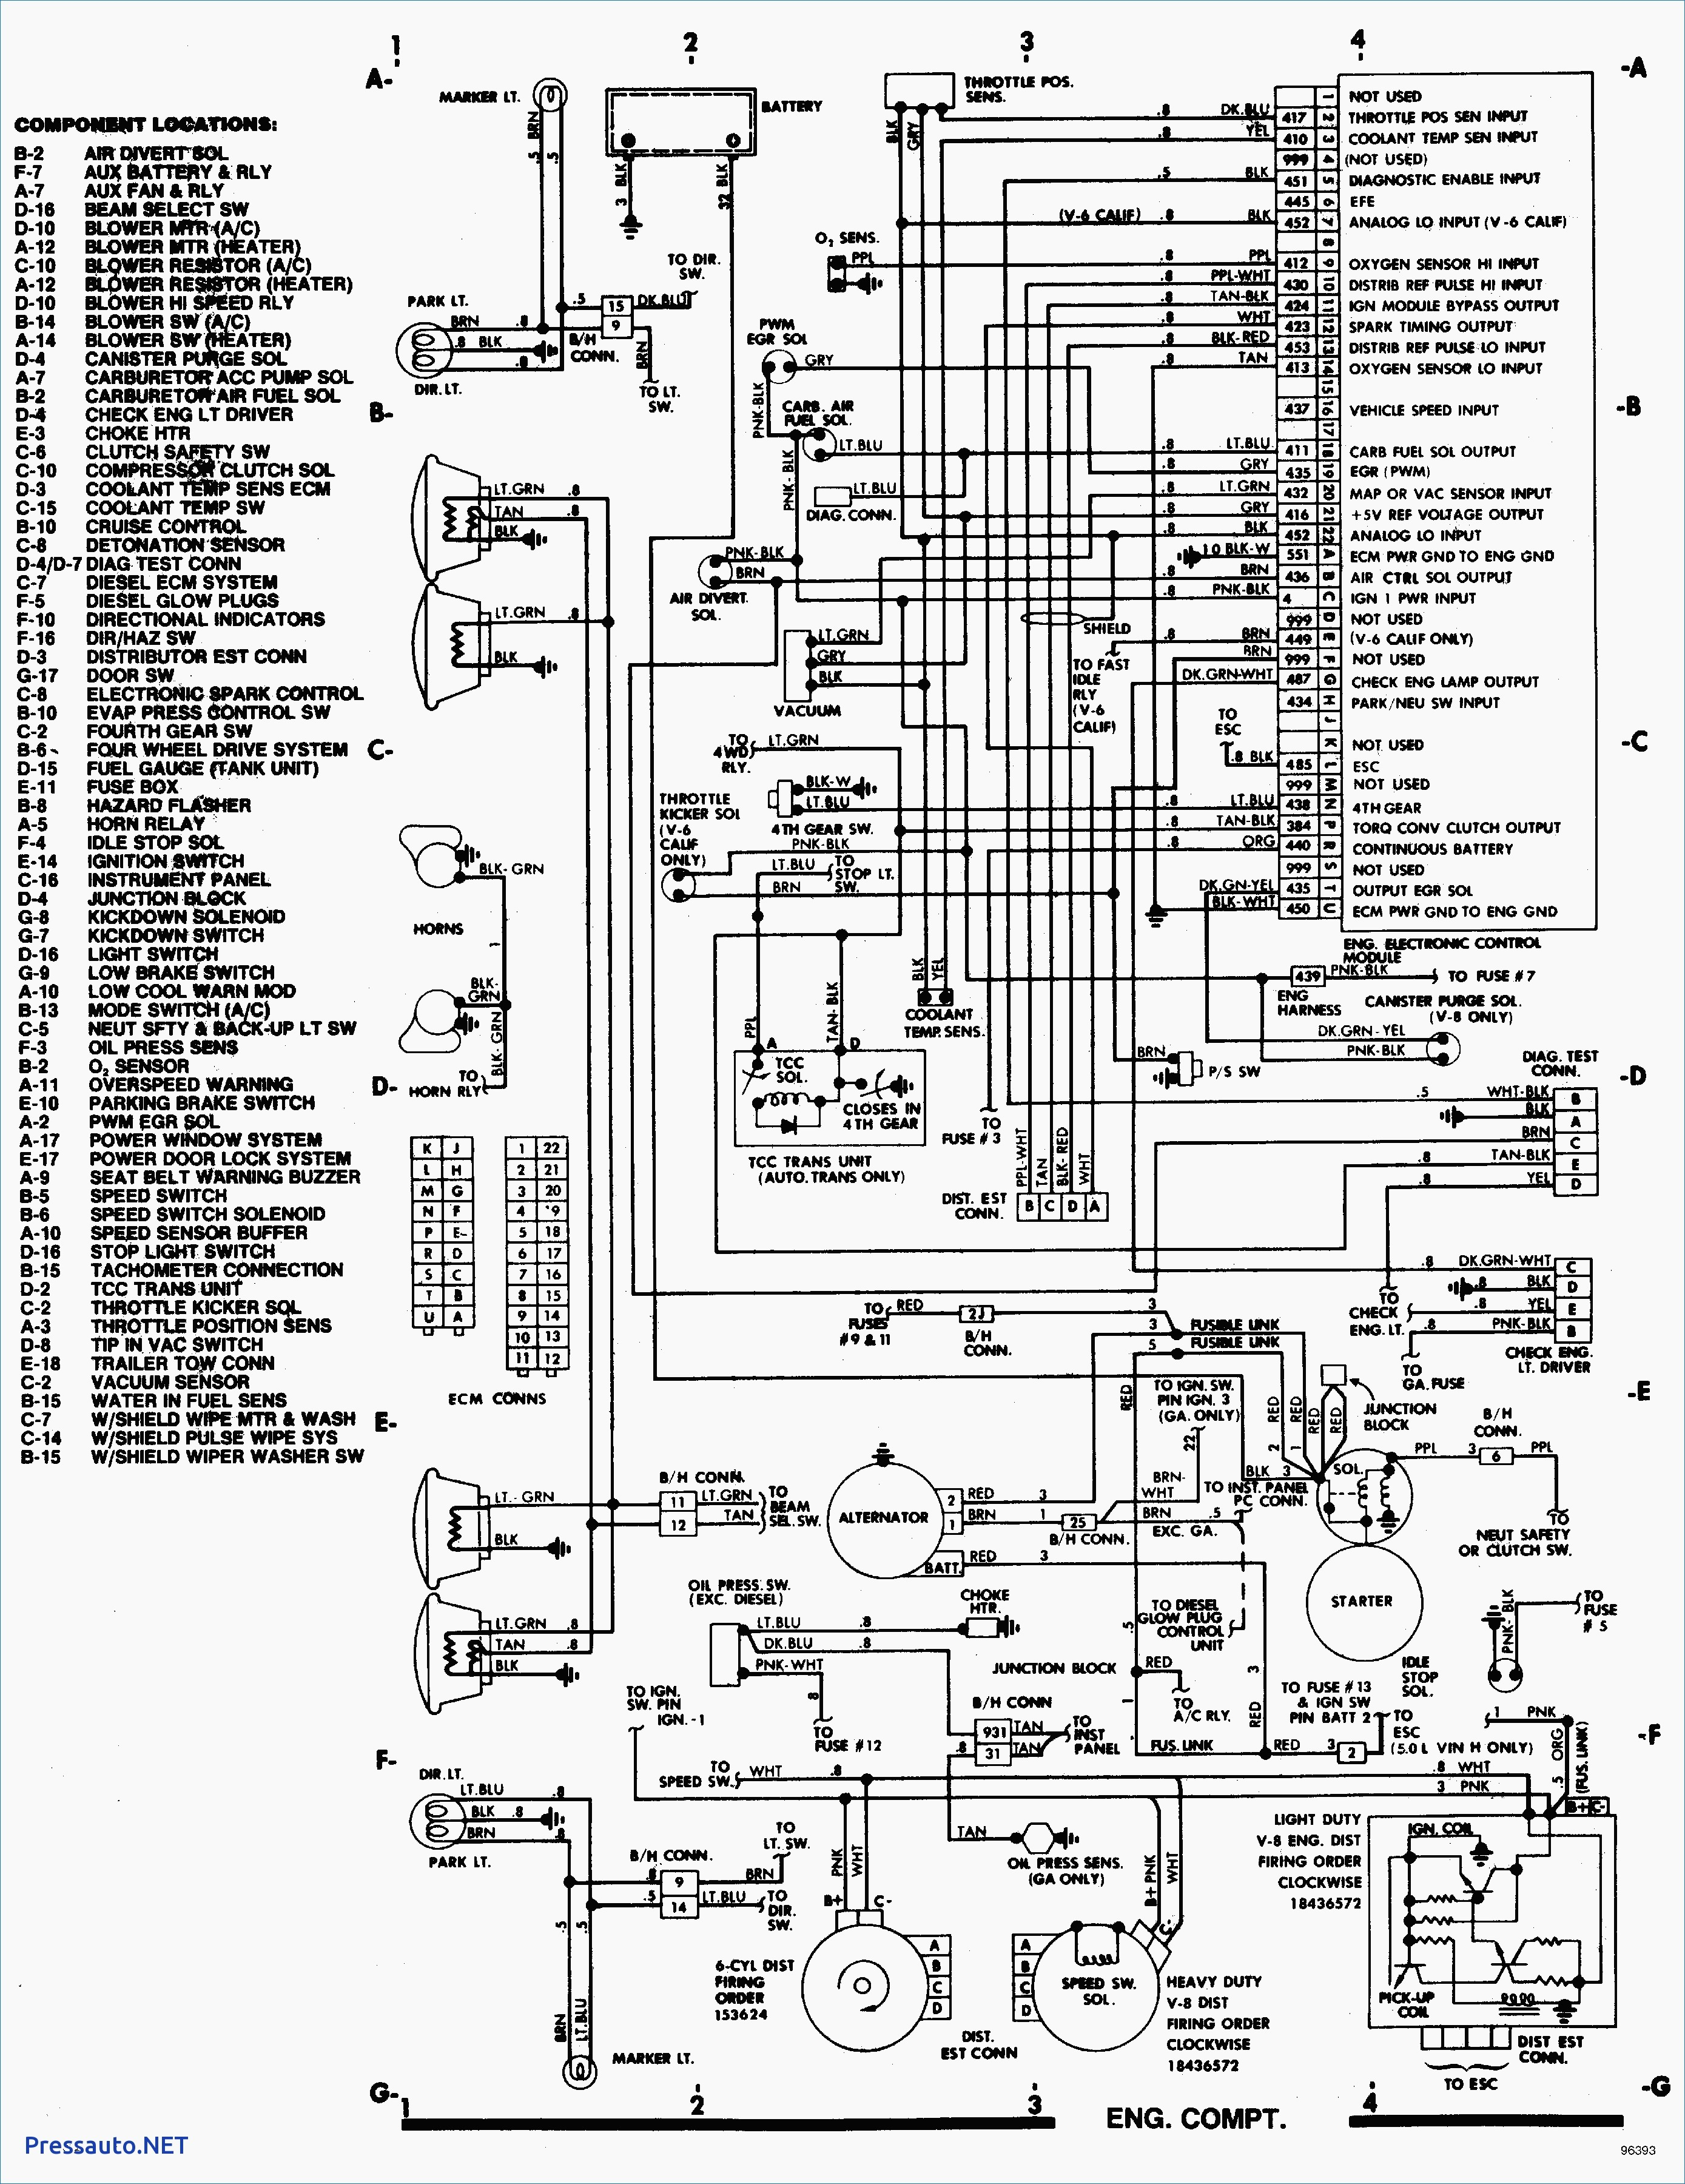 1983 toyota Pickup Wiring Diagram Best 1990 toyota Pickup Wiring Diagram Contemporary Everything You Of 1983 toyota Pickup Wiring Diagram